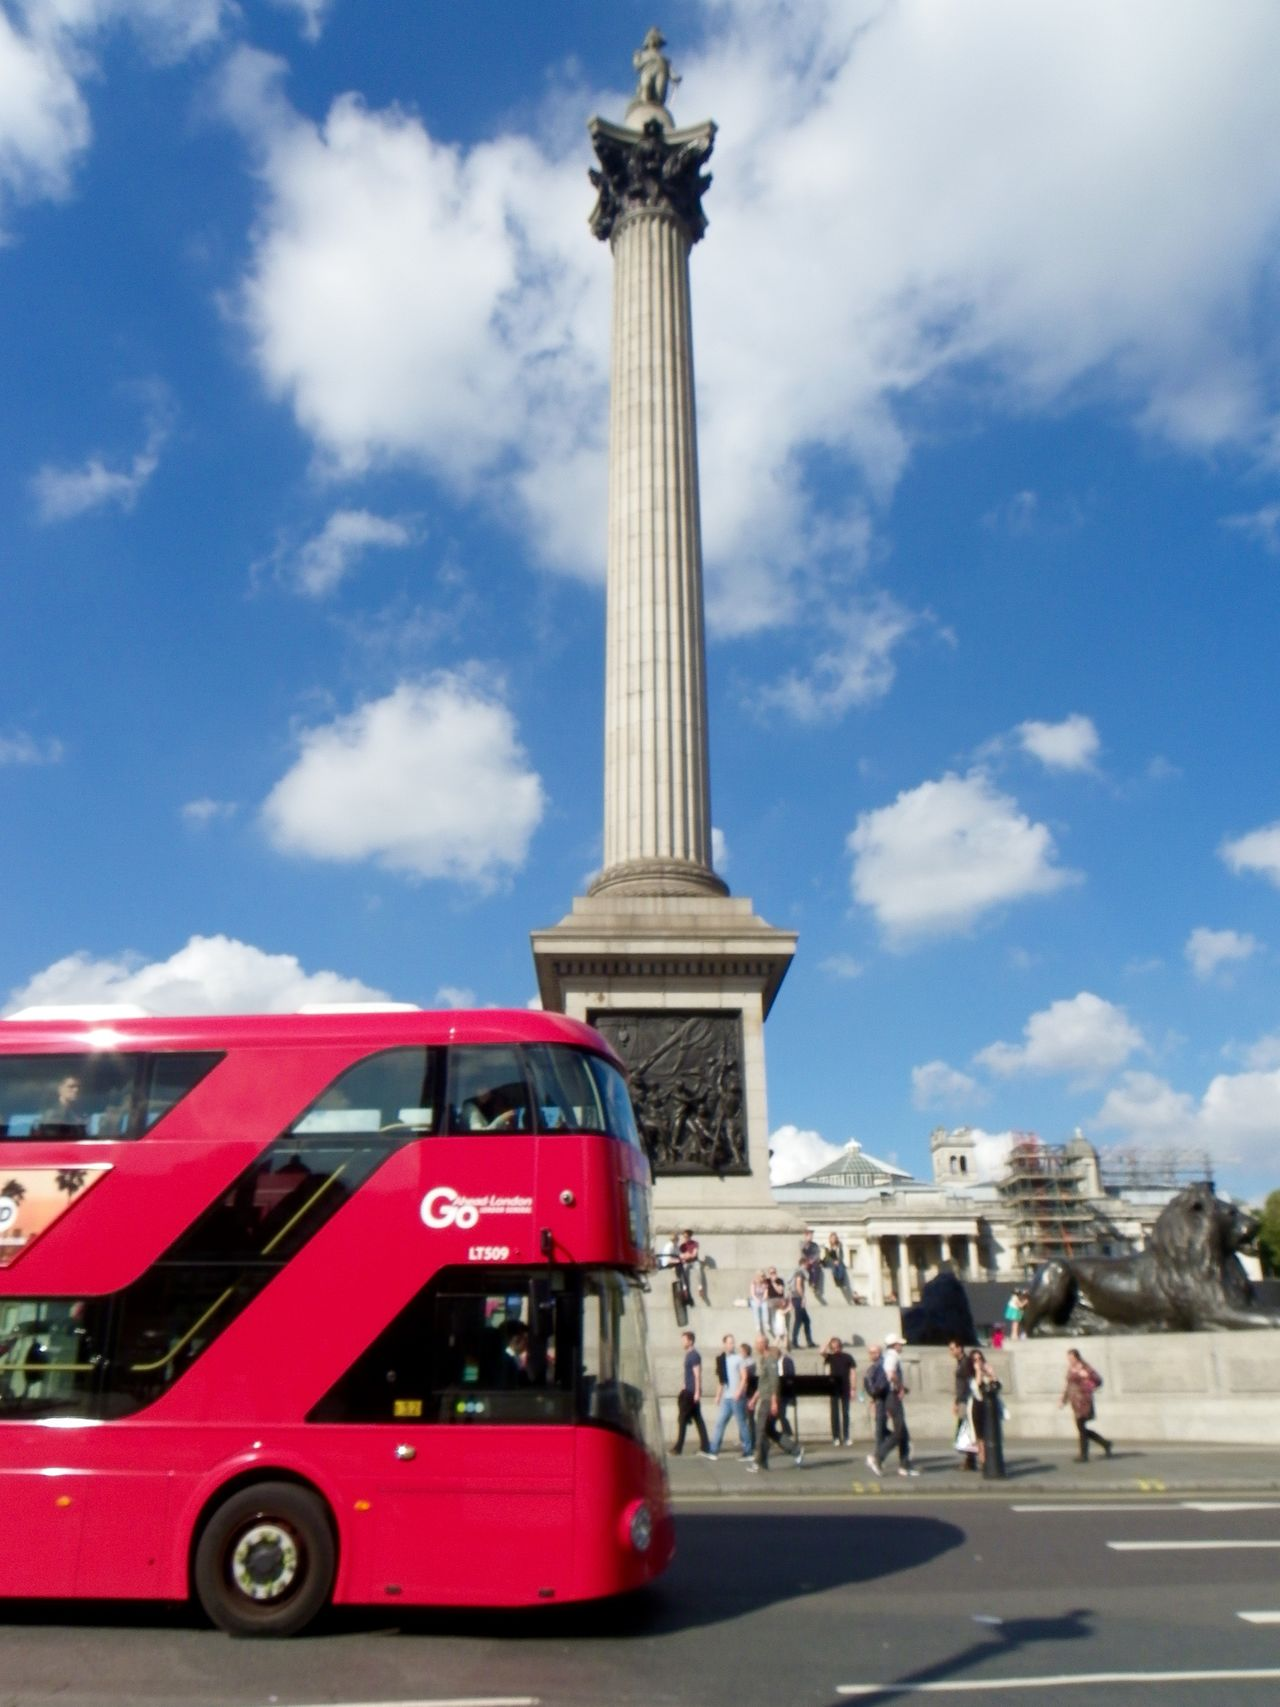 Tourist location Architecture City Cloud - Sky Day London Bus Nelsons Column Outdoors People Real People Red Sky Tourist Travel Destinations